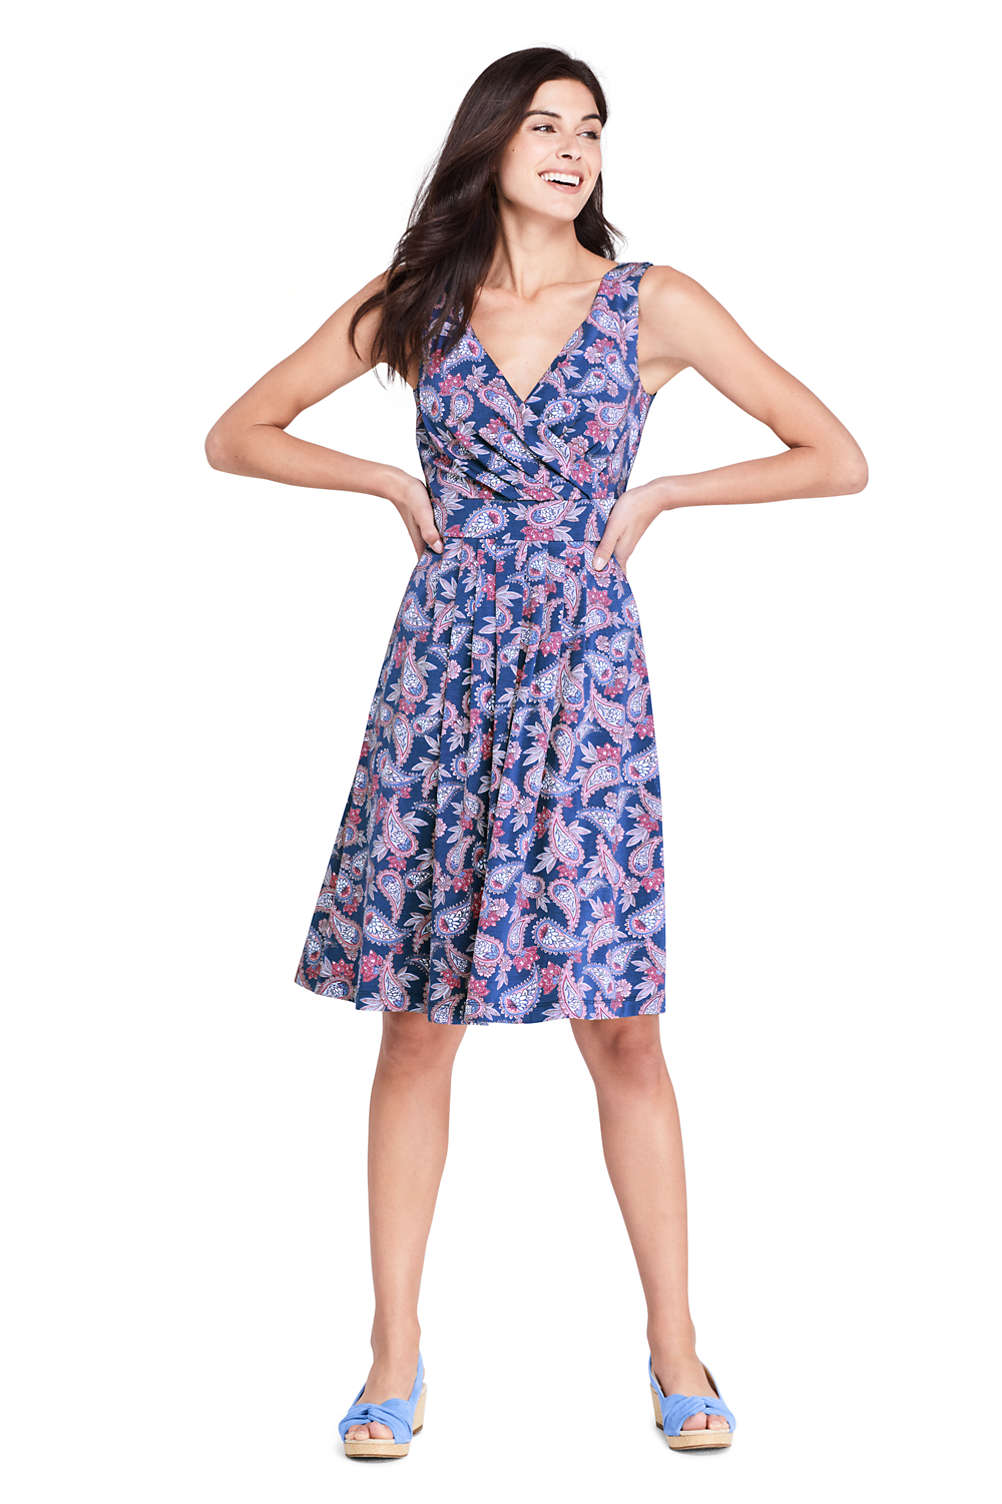 7123237b0f4 Women s Banded Waist Fit and Flare Dress Knee Length from Lands  End